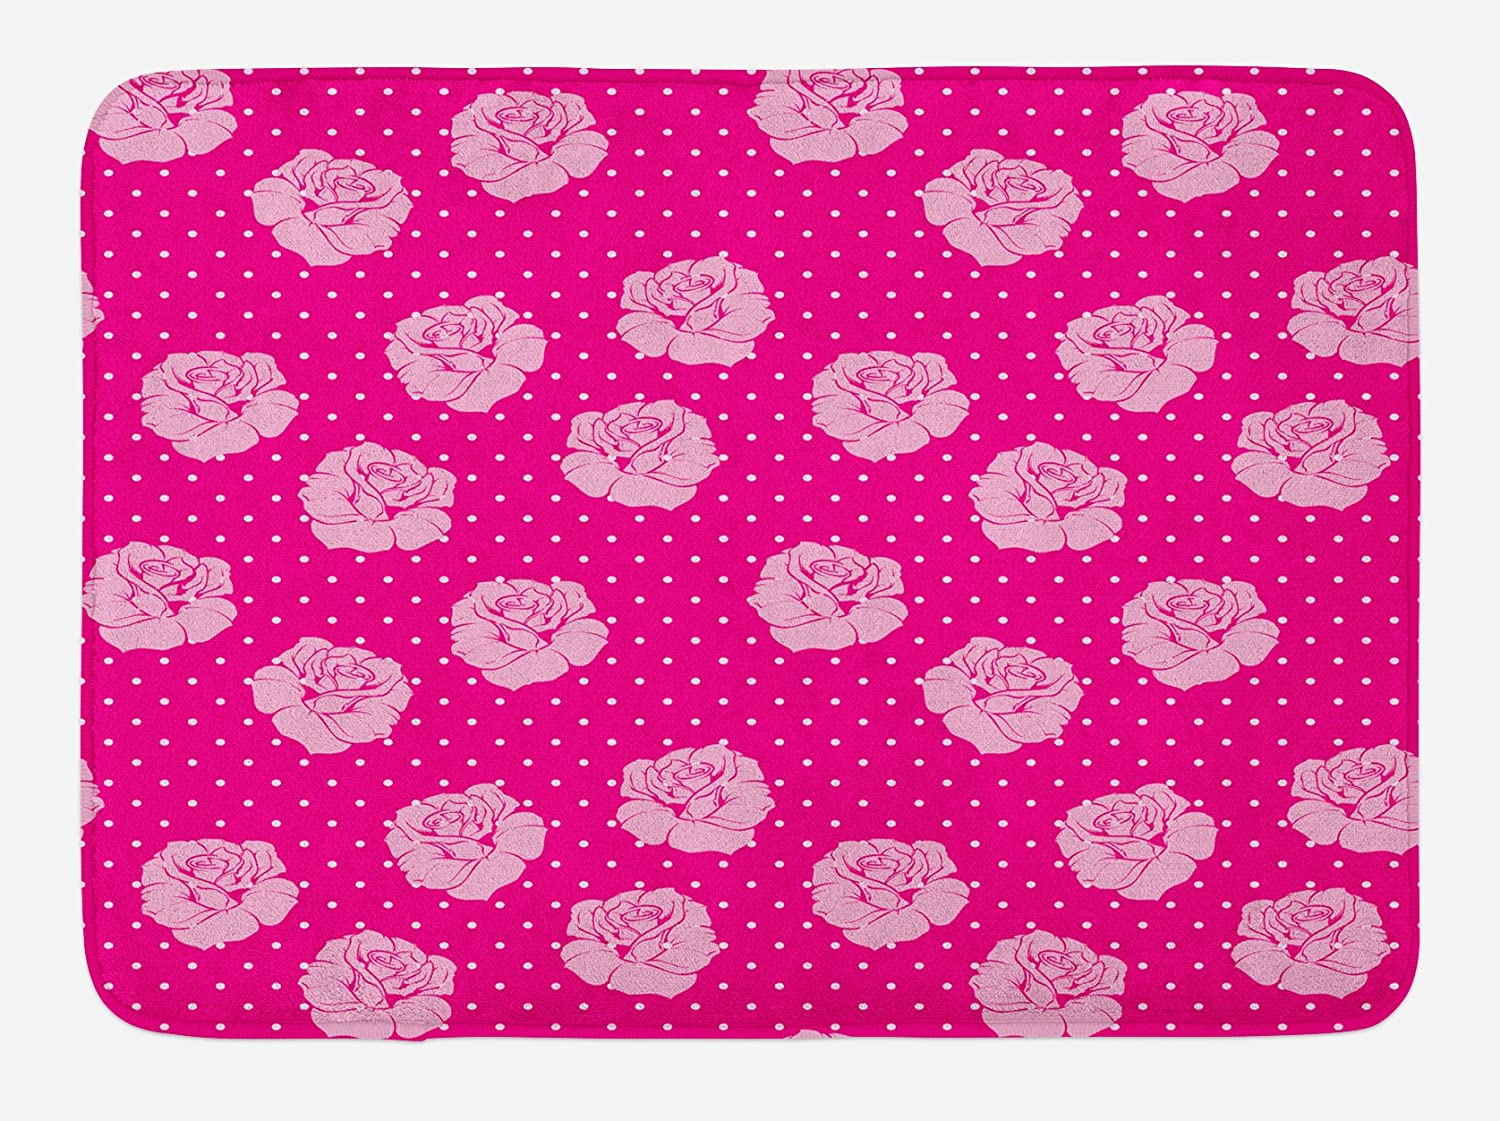 Ambesonne Hot Pink Bath Mat, Vintage Pale Pink Roses on White Dotted Hot Pink Background Love, Plush Bathroom Decor Mat with Non Slip Backing, 29.5